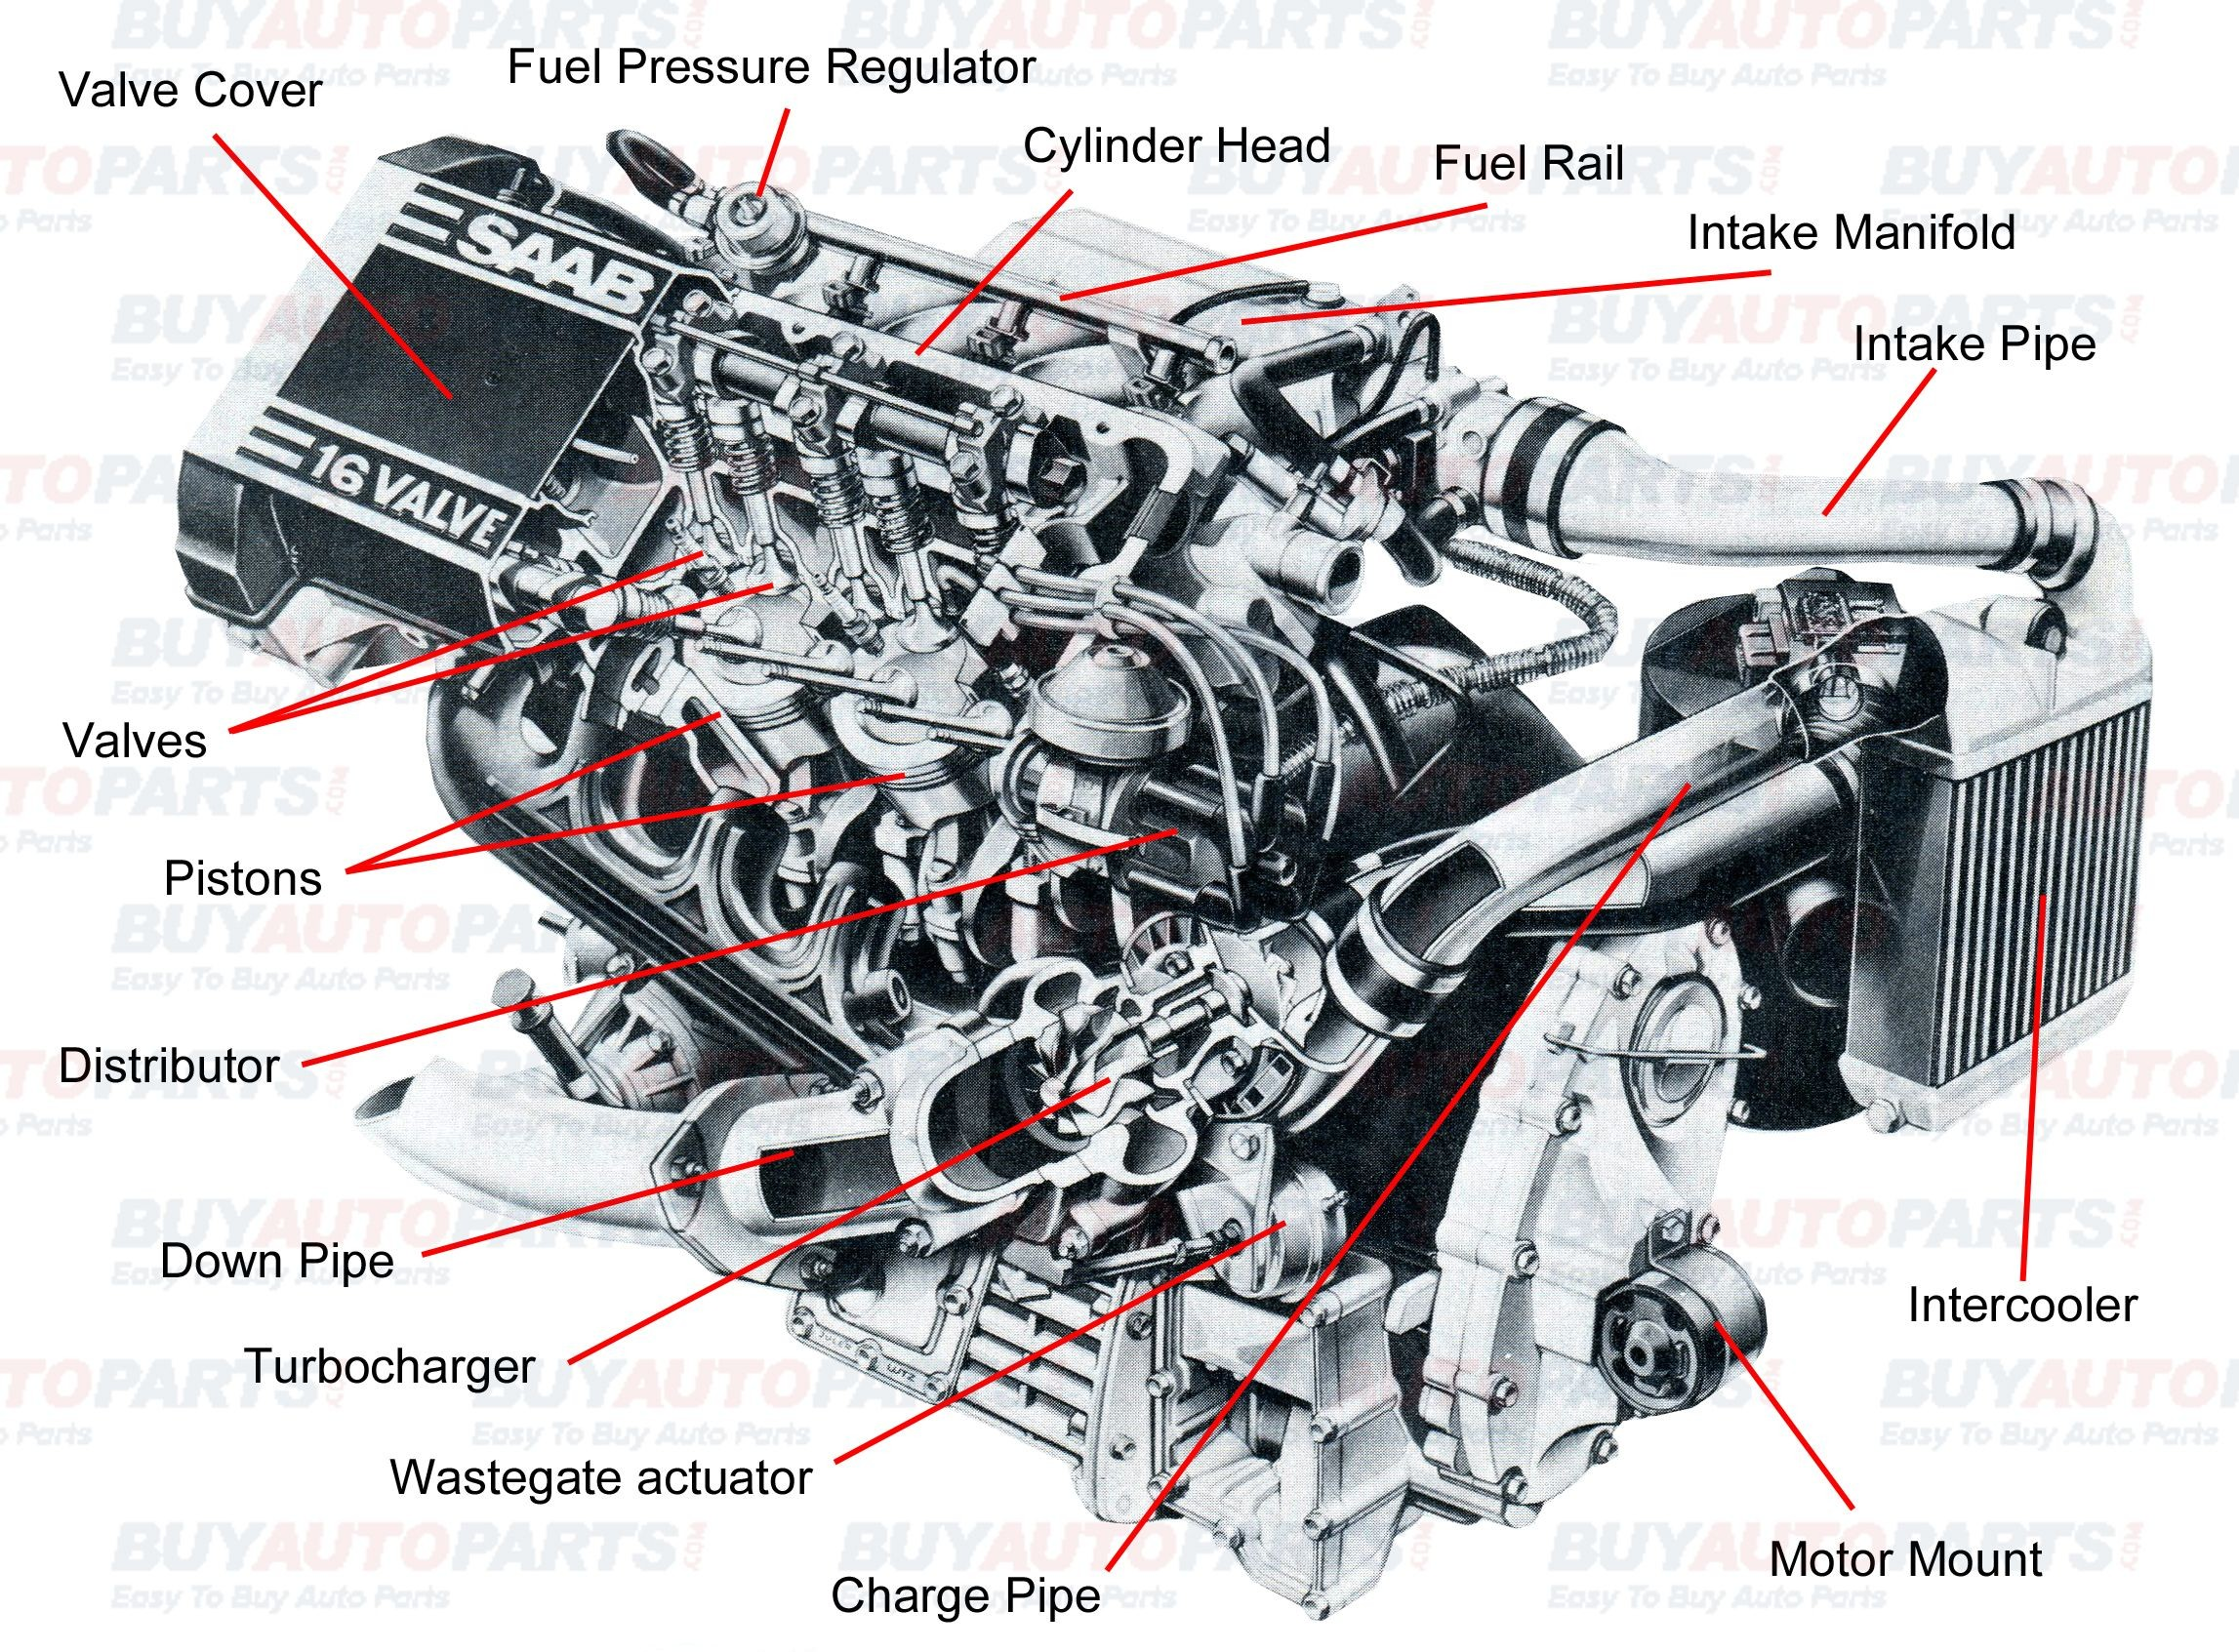 Car Radiator Parts Diagram Pin by Jimmiejanet Testellamwfz On What Does An Engine with Turbo Of Car Radiator Parts Diagram Audi Mass Air Flow Sensor Fuel Metering Valve Air Cleaner with